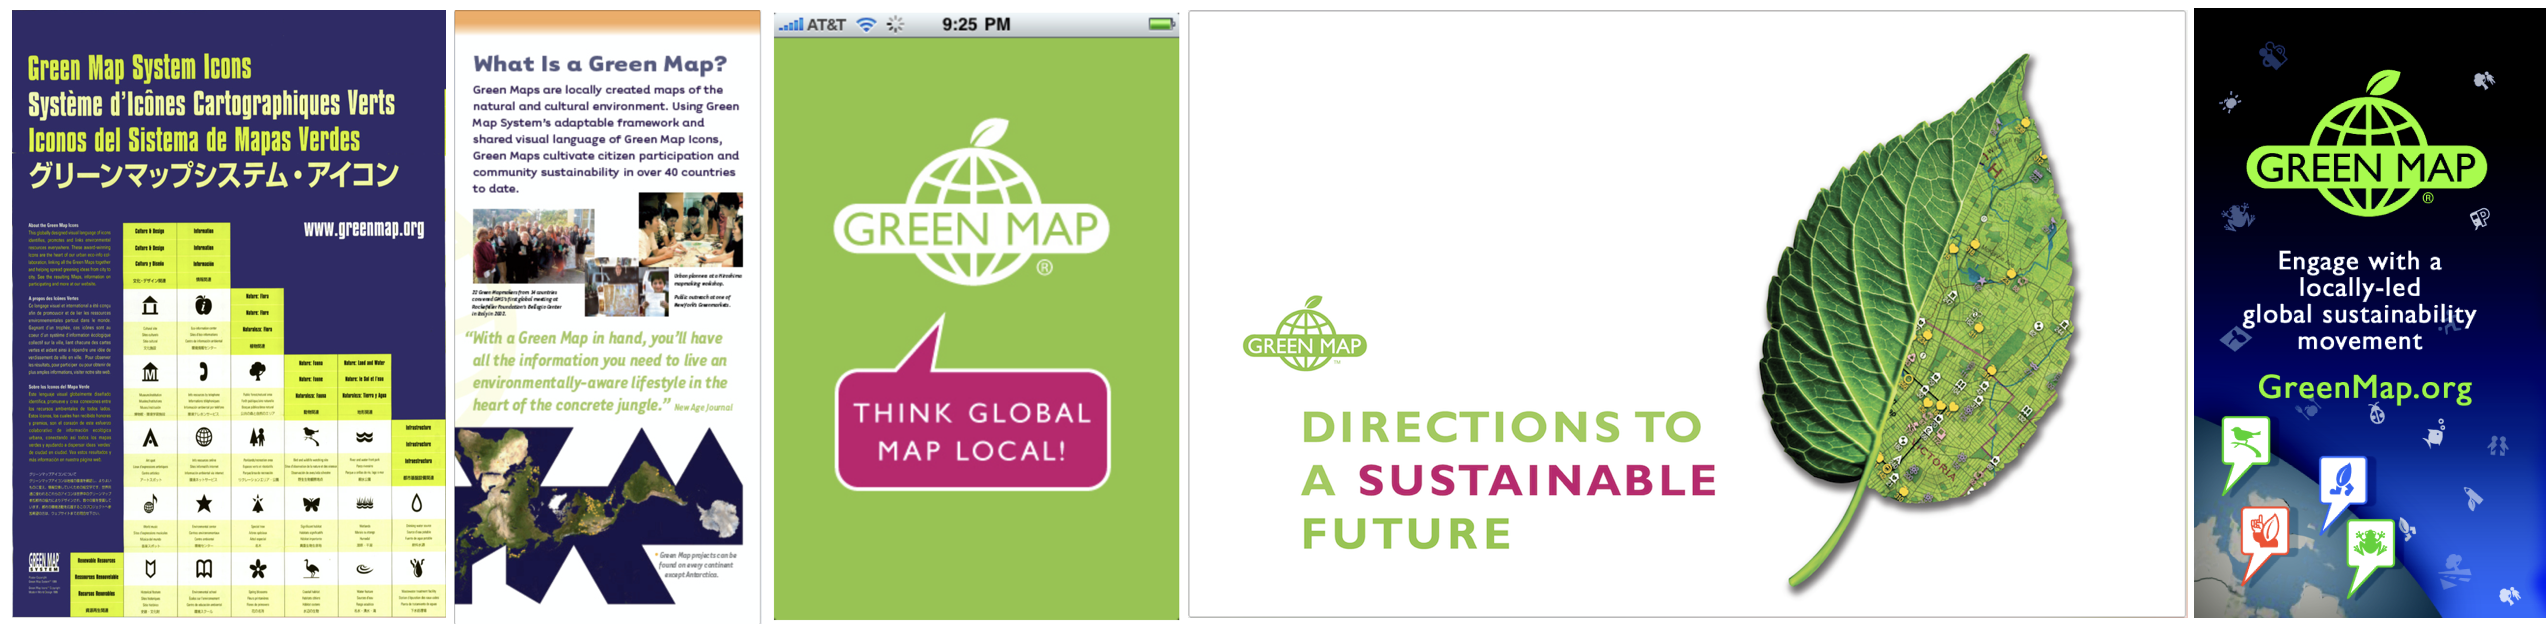 Designed by Green Mapmakers